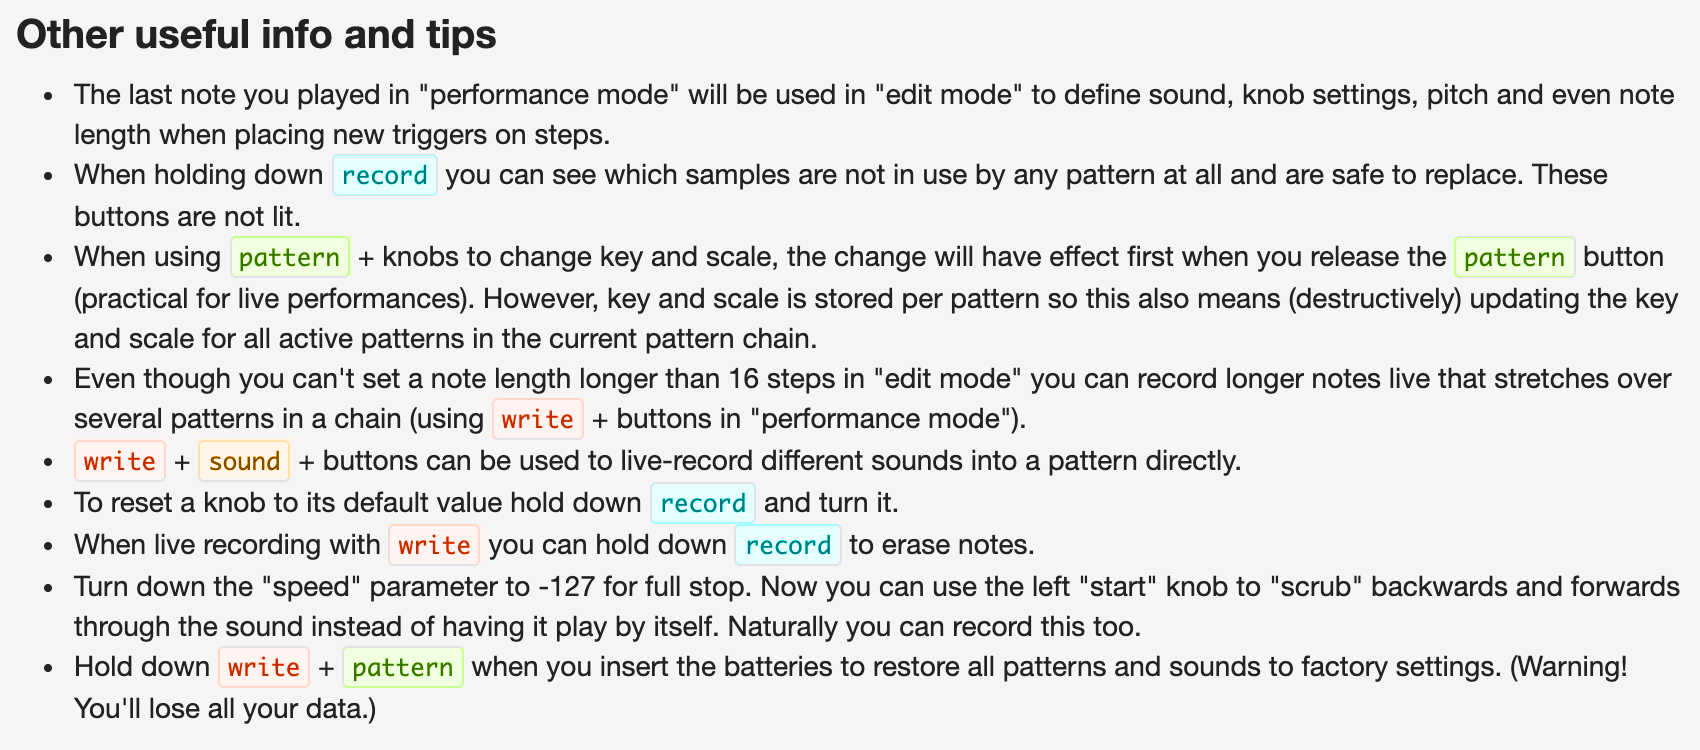 PO-35 Other tips